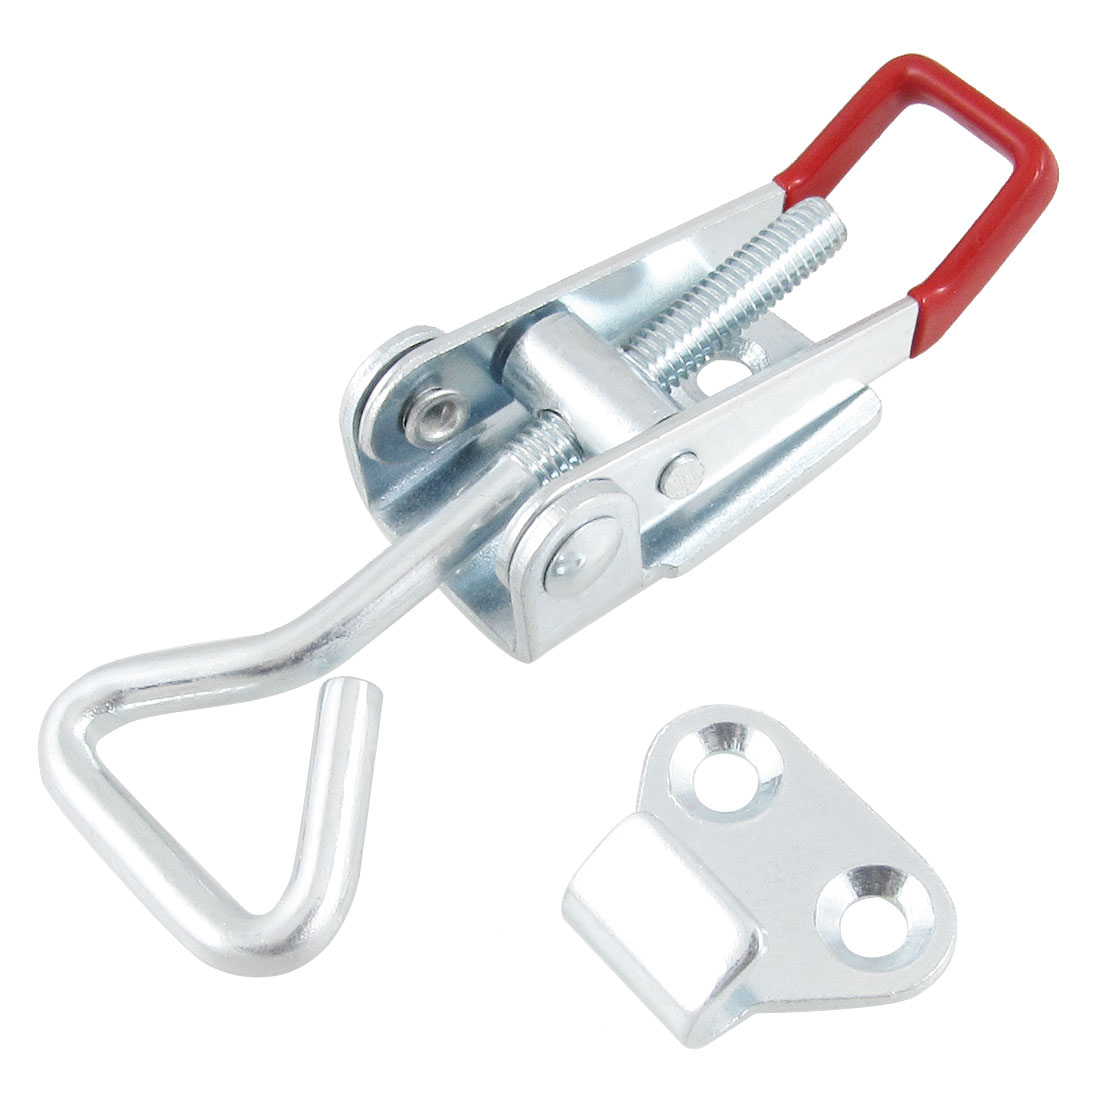 Home Toolbox Case Spare Fitting Metal Toggle Latch Catch 4""